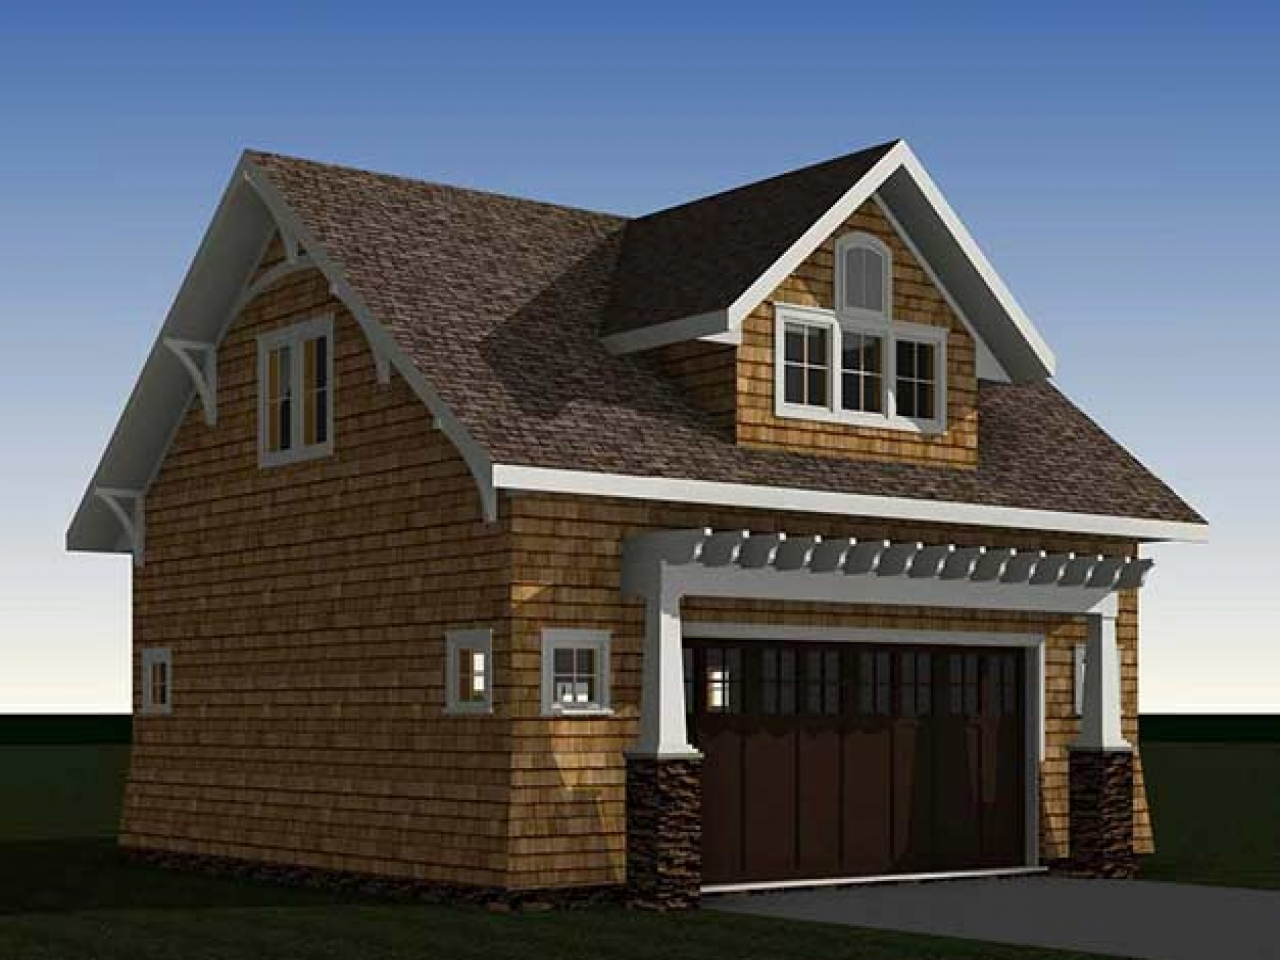 Bungalow garage with apartment garage apartment interior for Bungalow house plans with basement and garage